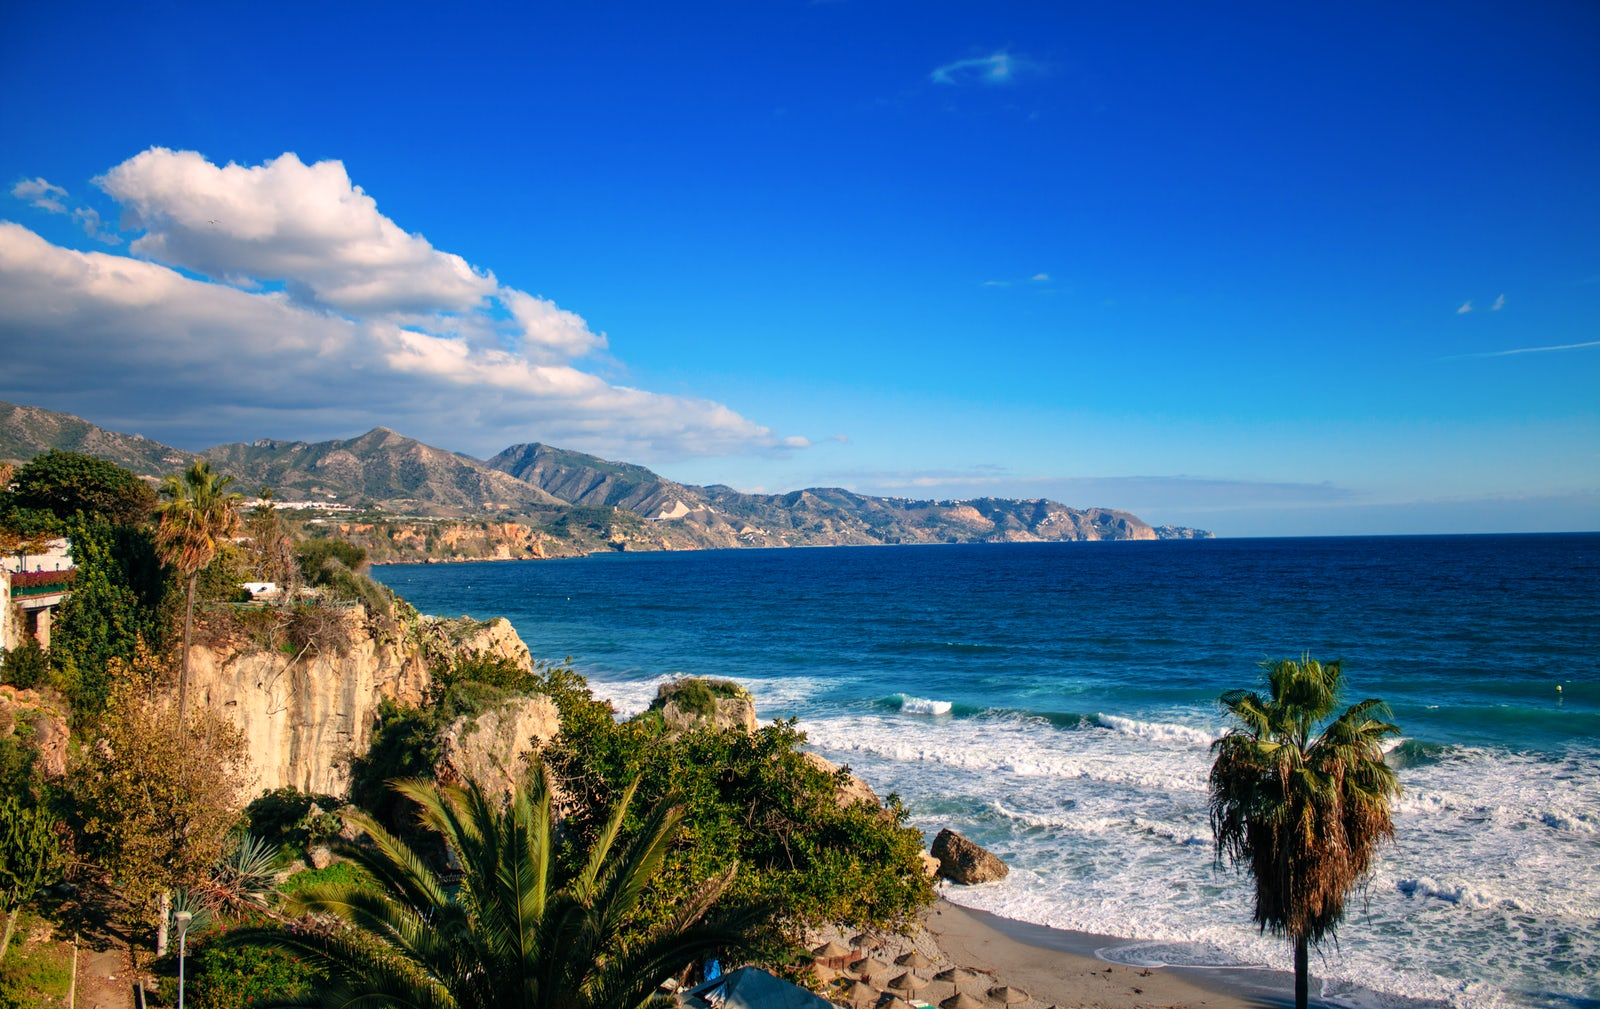 Costa del Sol: the most popular choice to retire